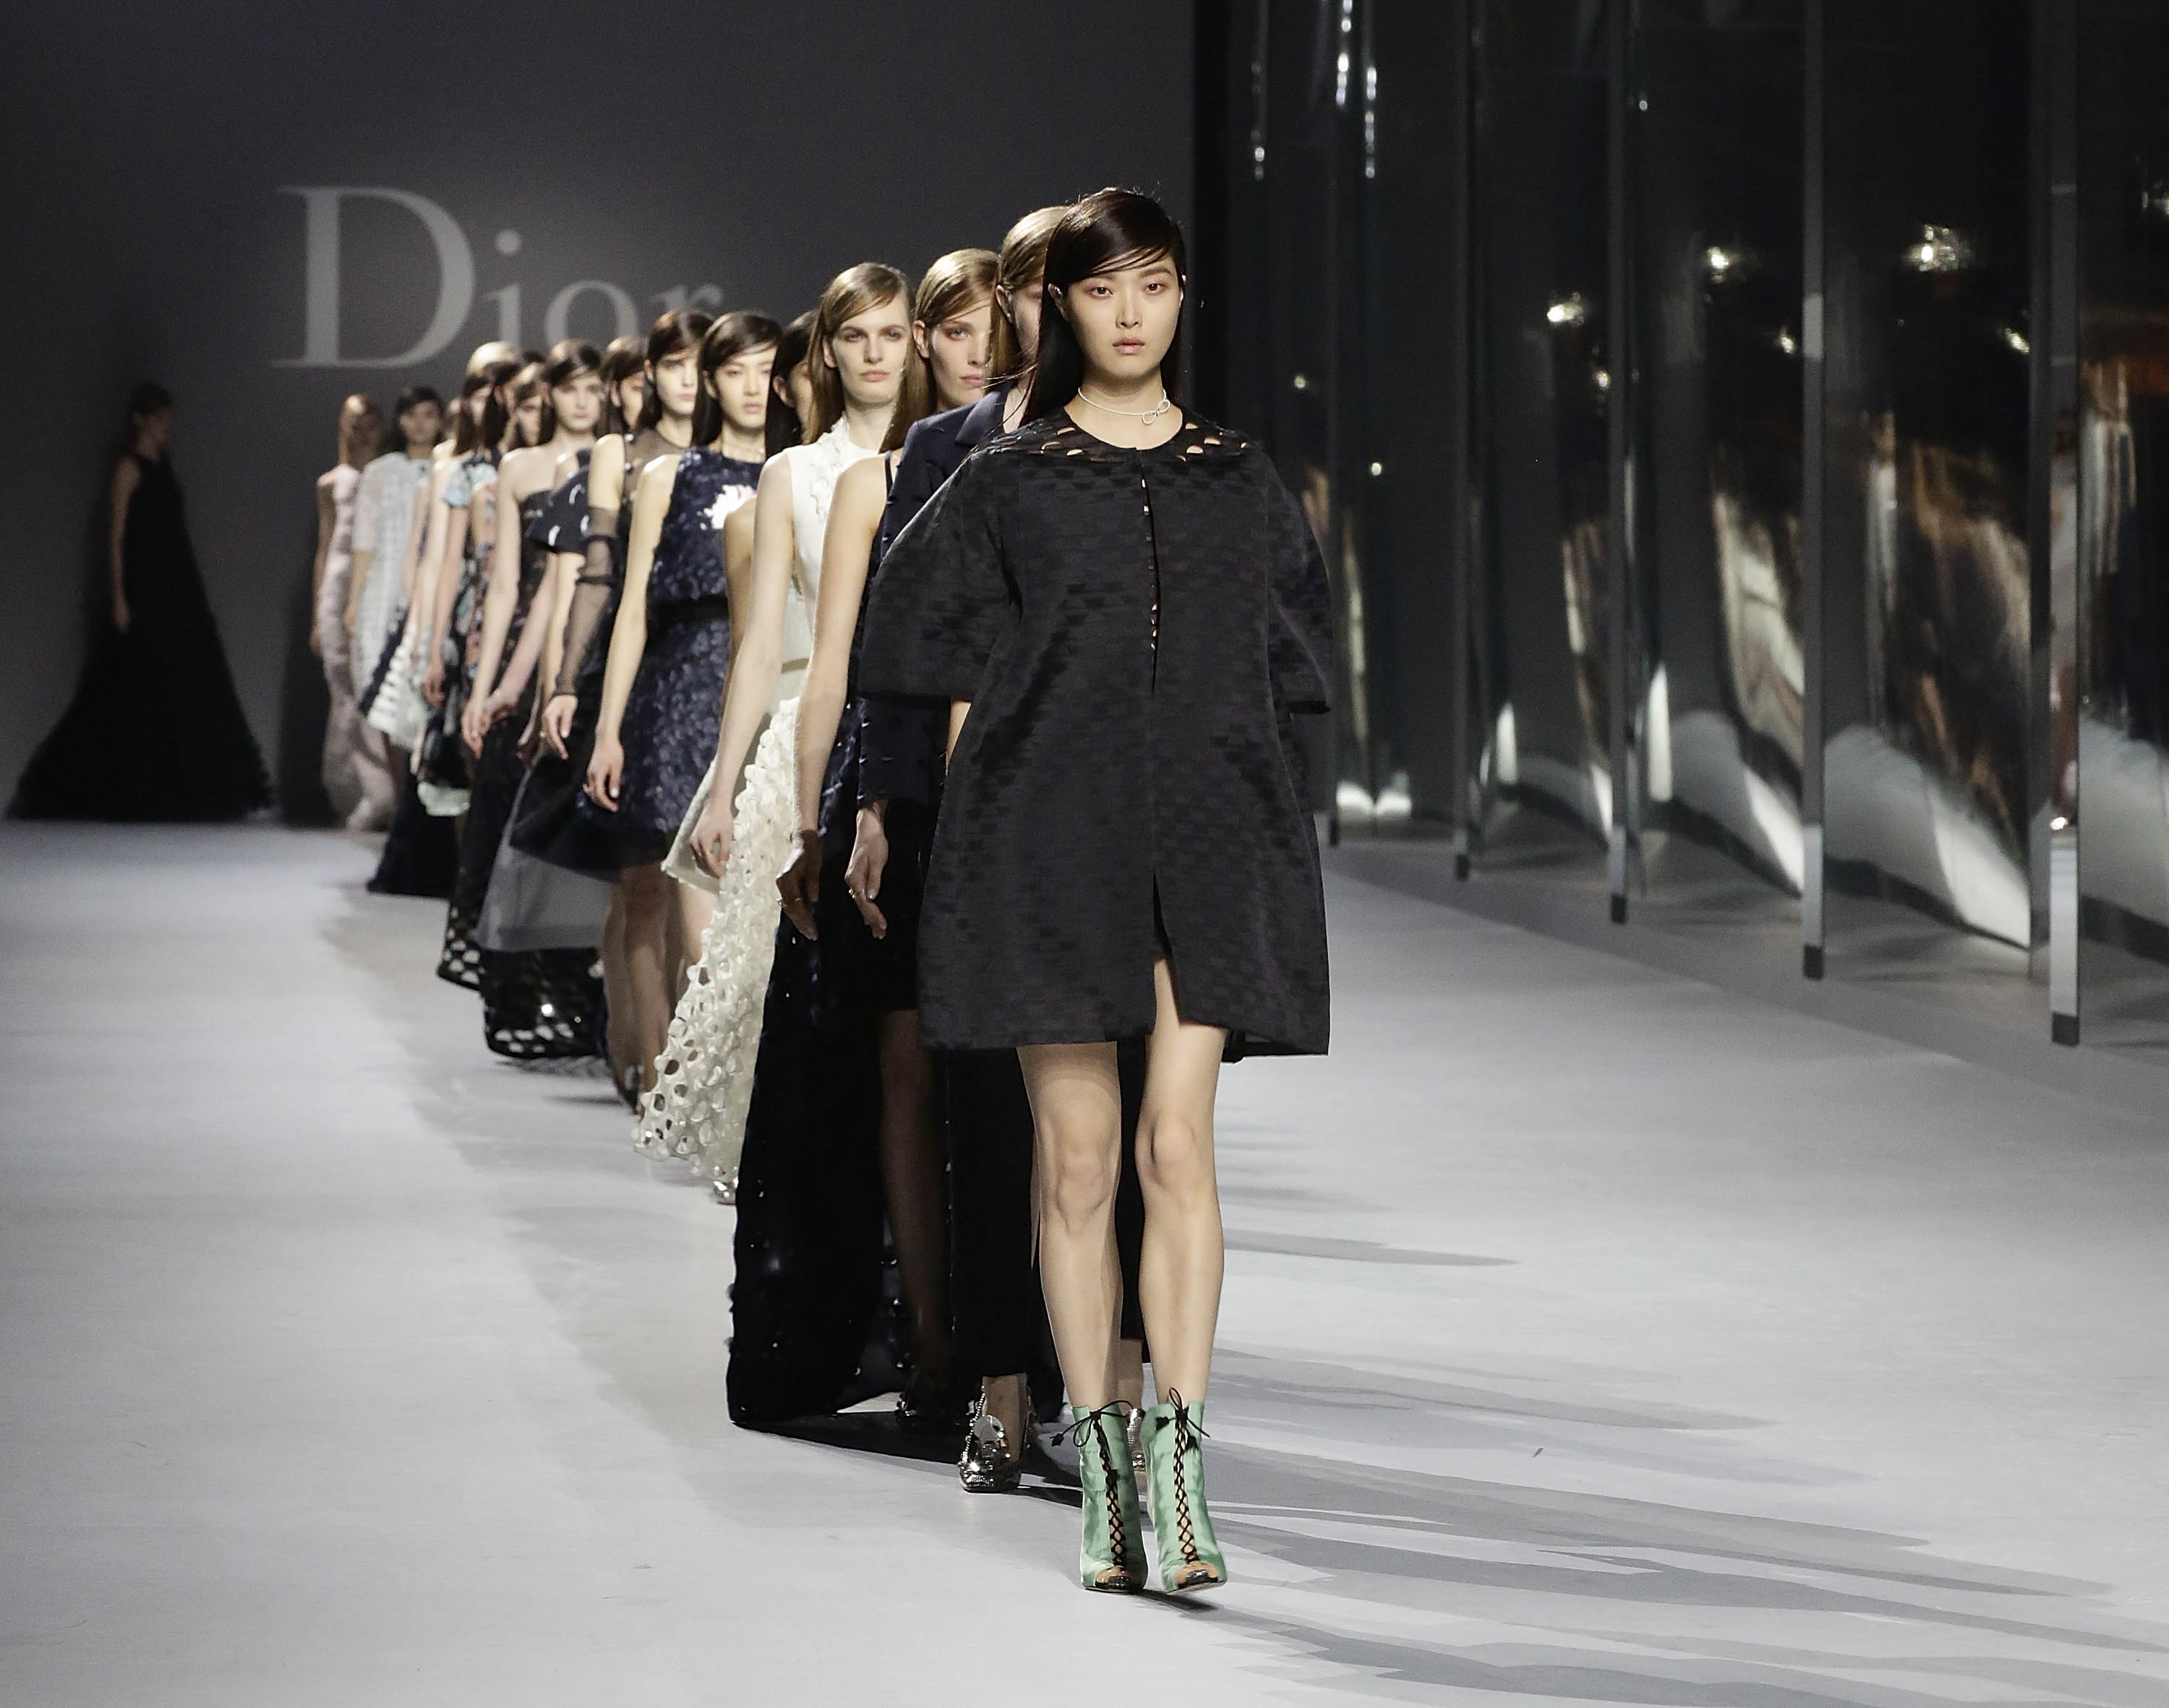 Christian Dior brings its Spring/Summer 2014 couture show ...